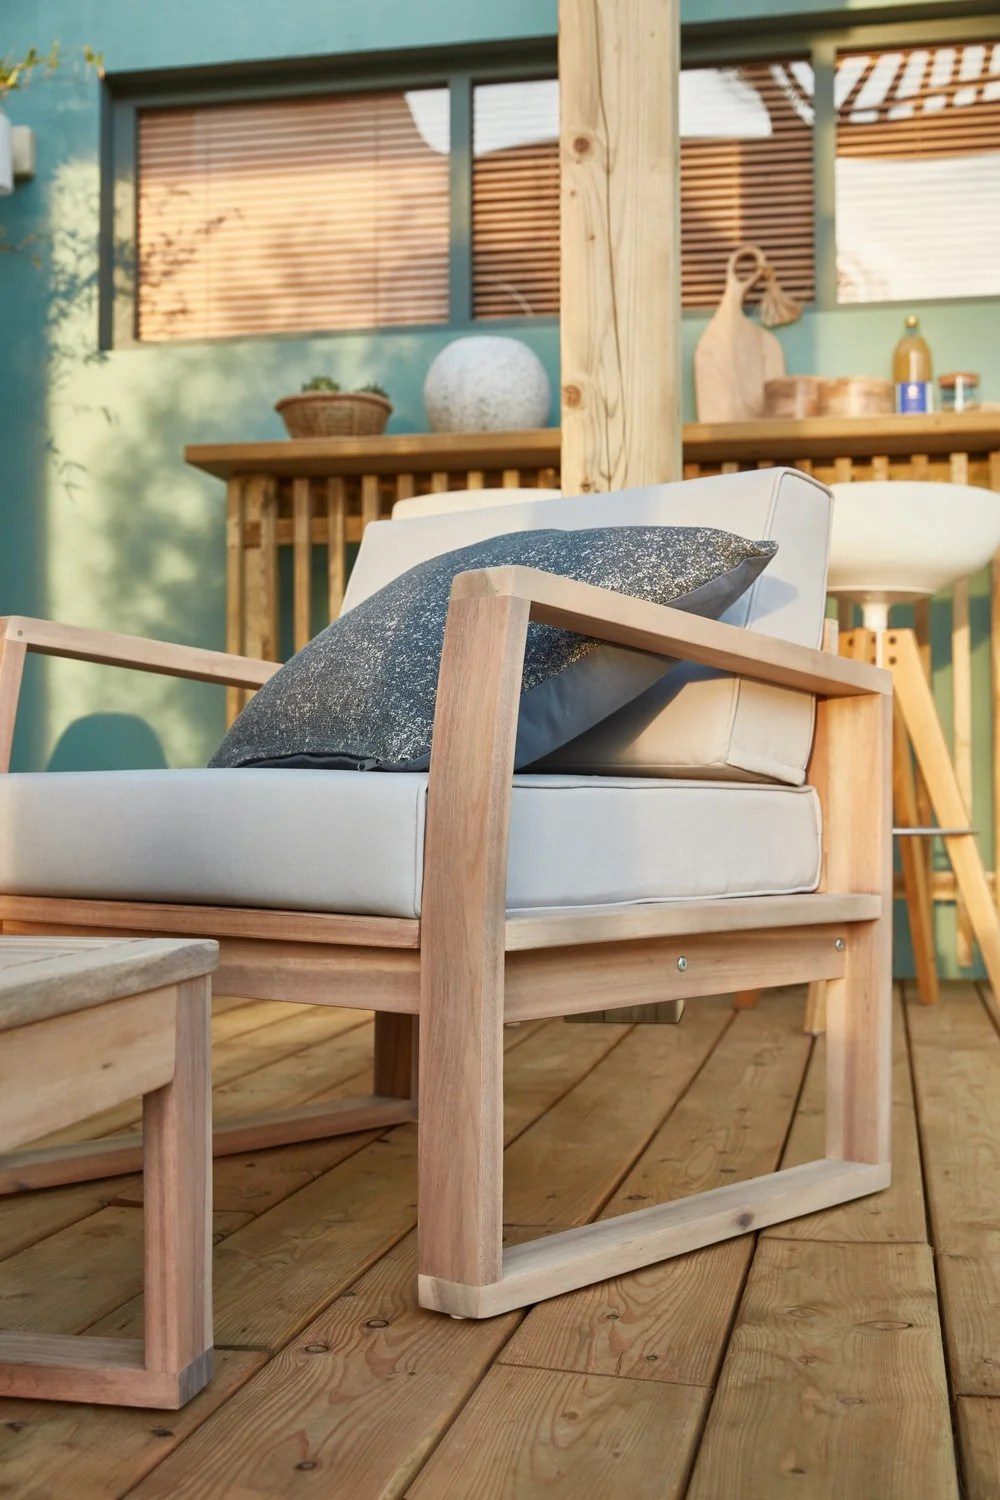 La Nouvelle Collection De Salon De Jardin 2020 Leroy Merlin